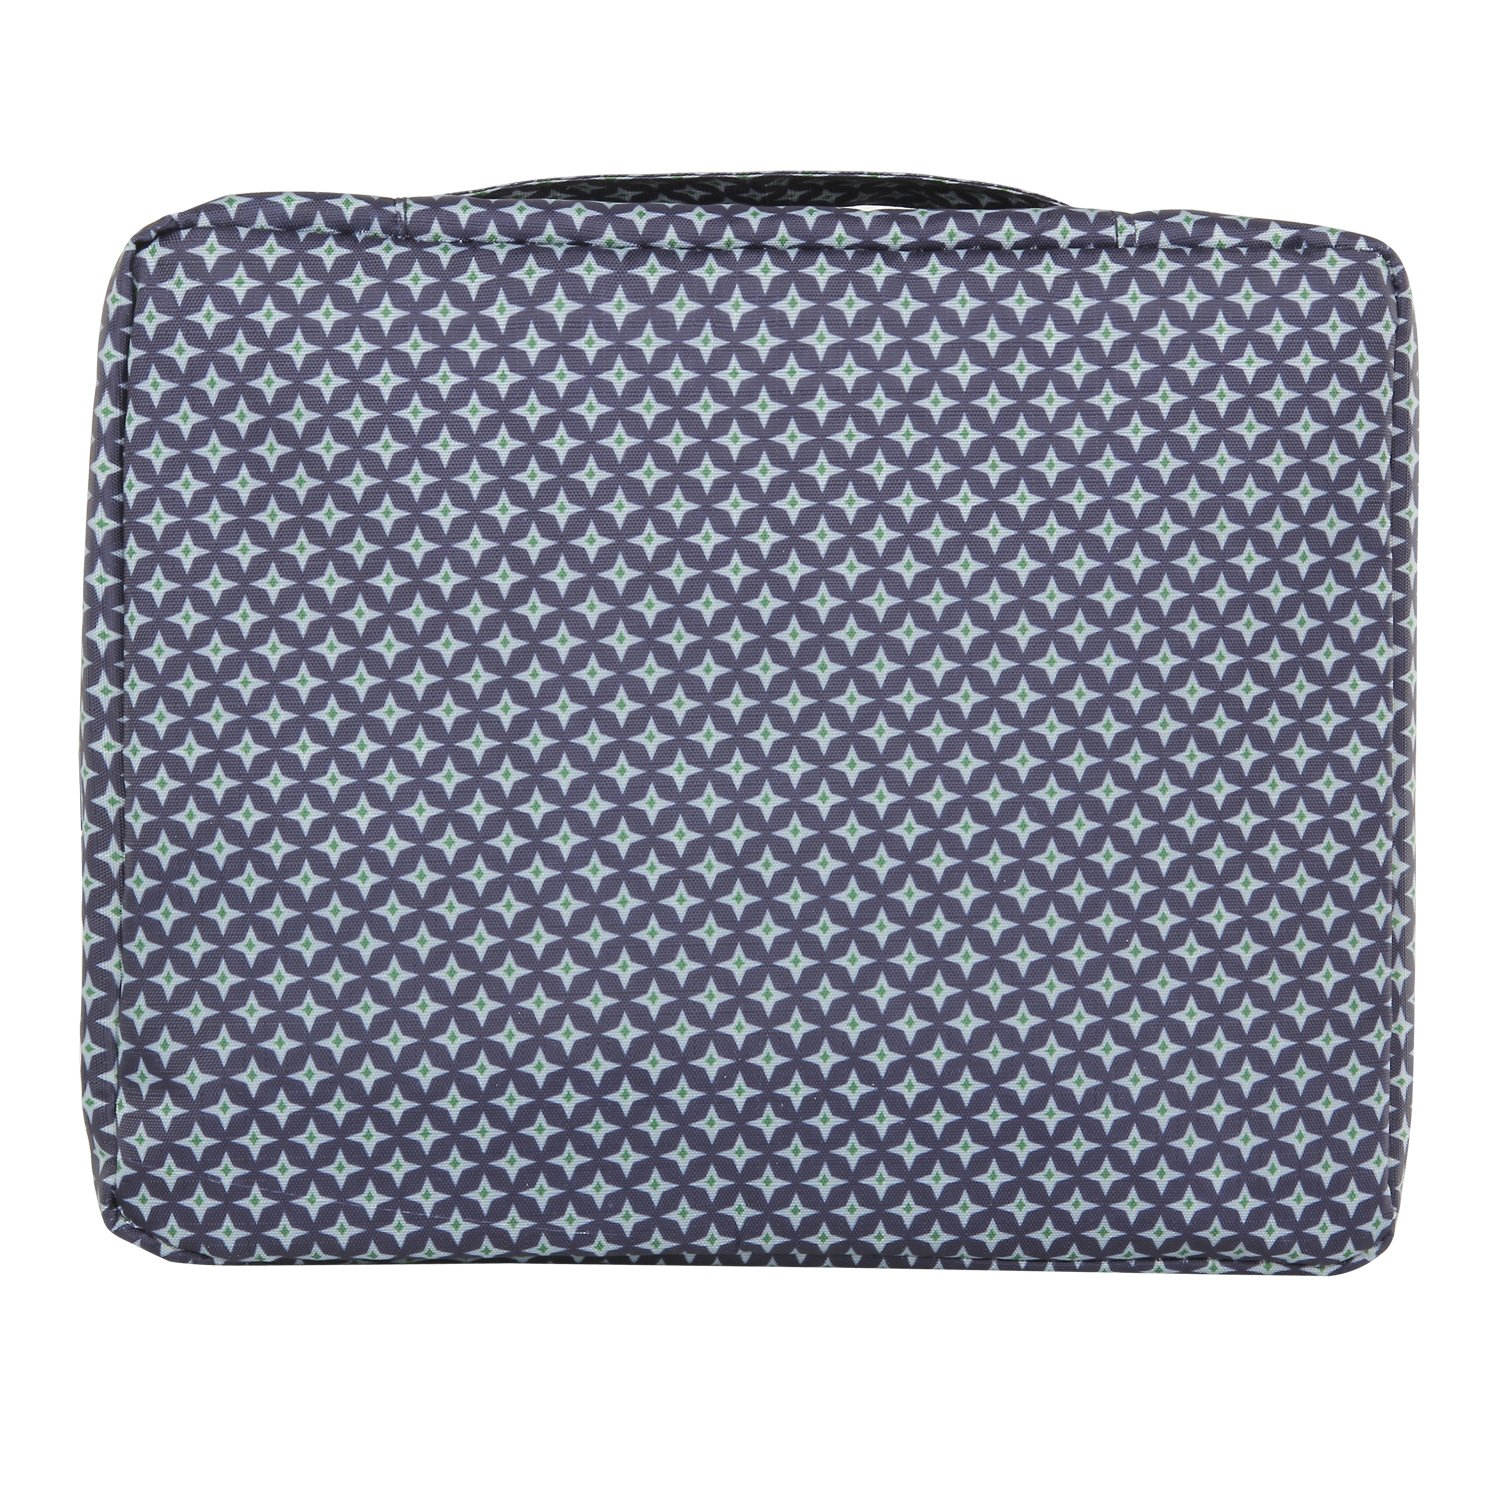 Discoball Floral Print Waterproof Travel Pattern Multi Pouch Cosmetic Makeup Bag Toiletry Organizernavy Blue 70471